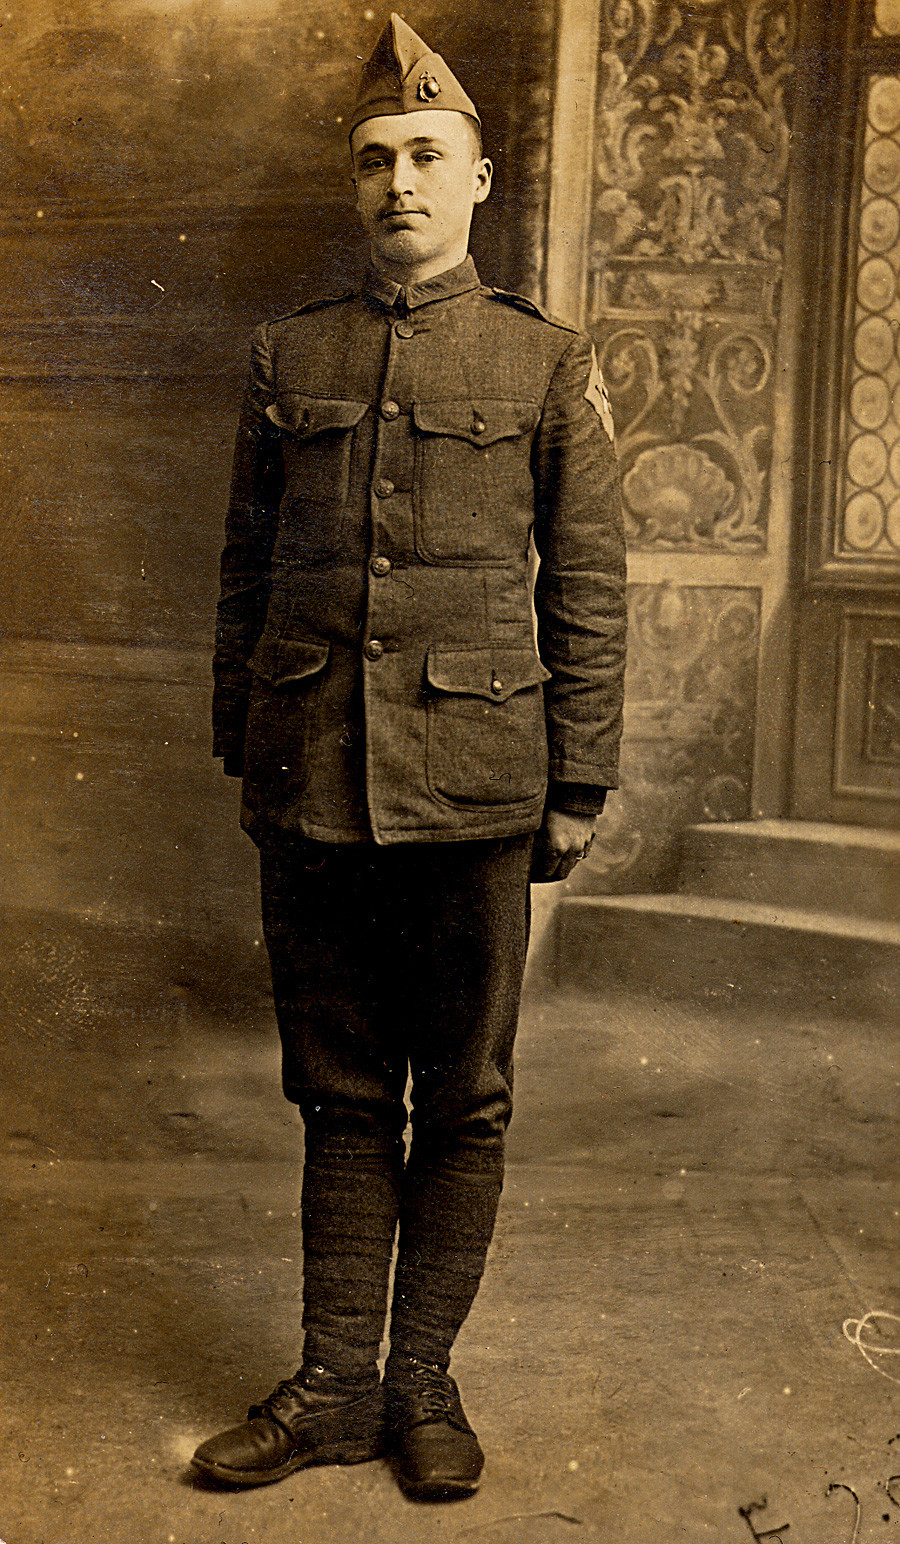 Brumfield's father in Aix-les-Bains, France, 1918